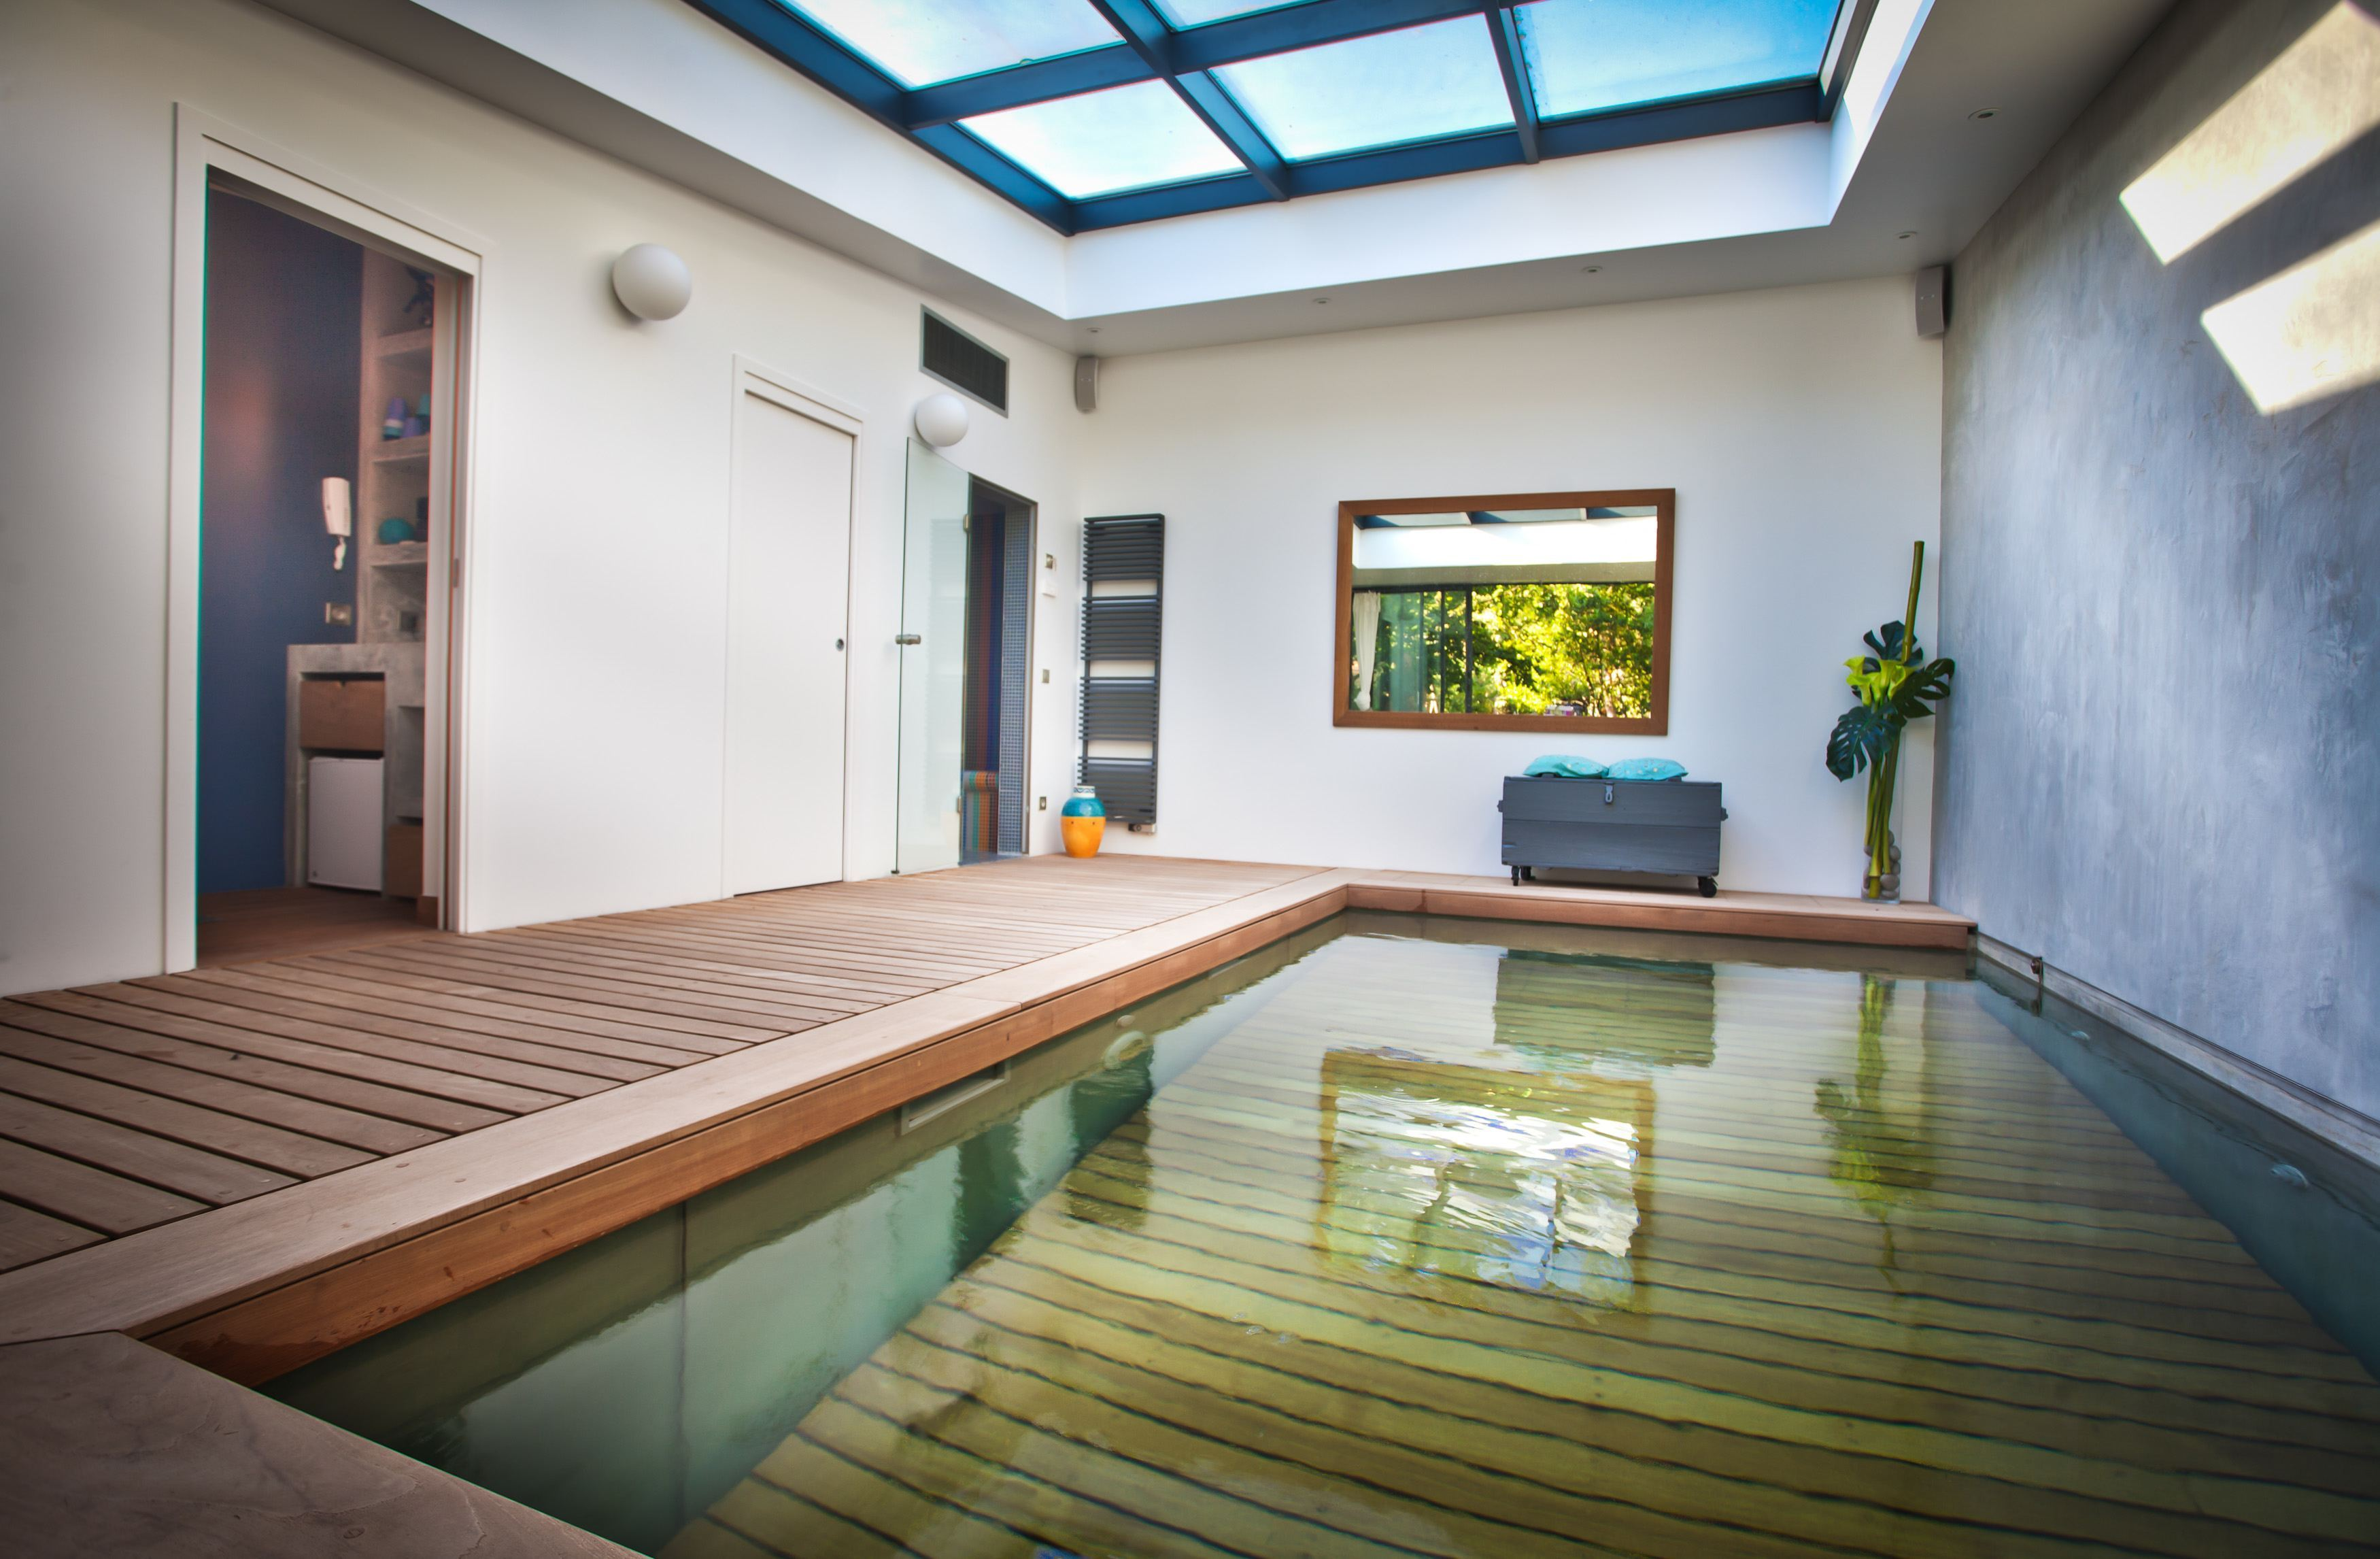 Photos cette piscine couverte donne envie de s 39 installer for Voir piscine